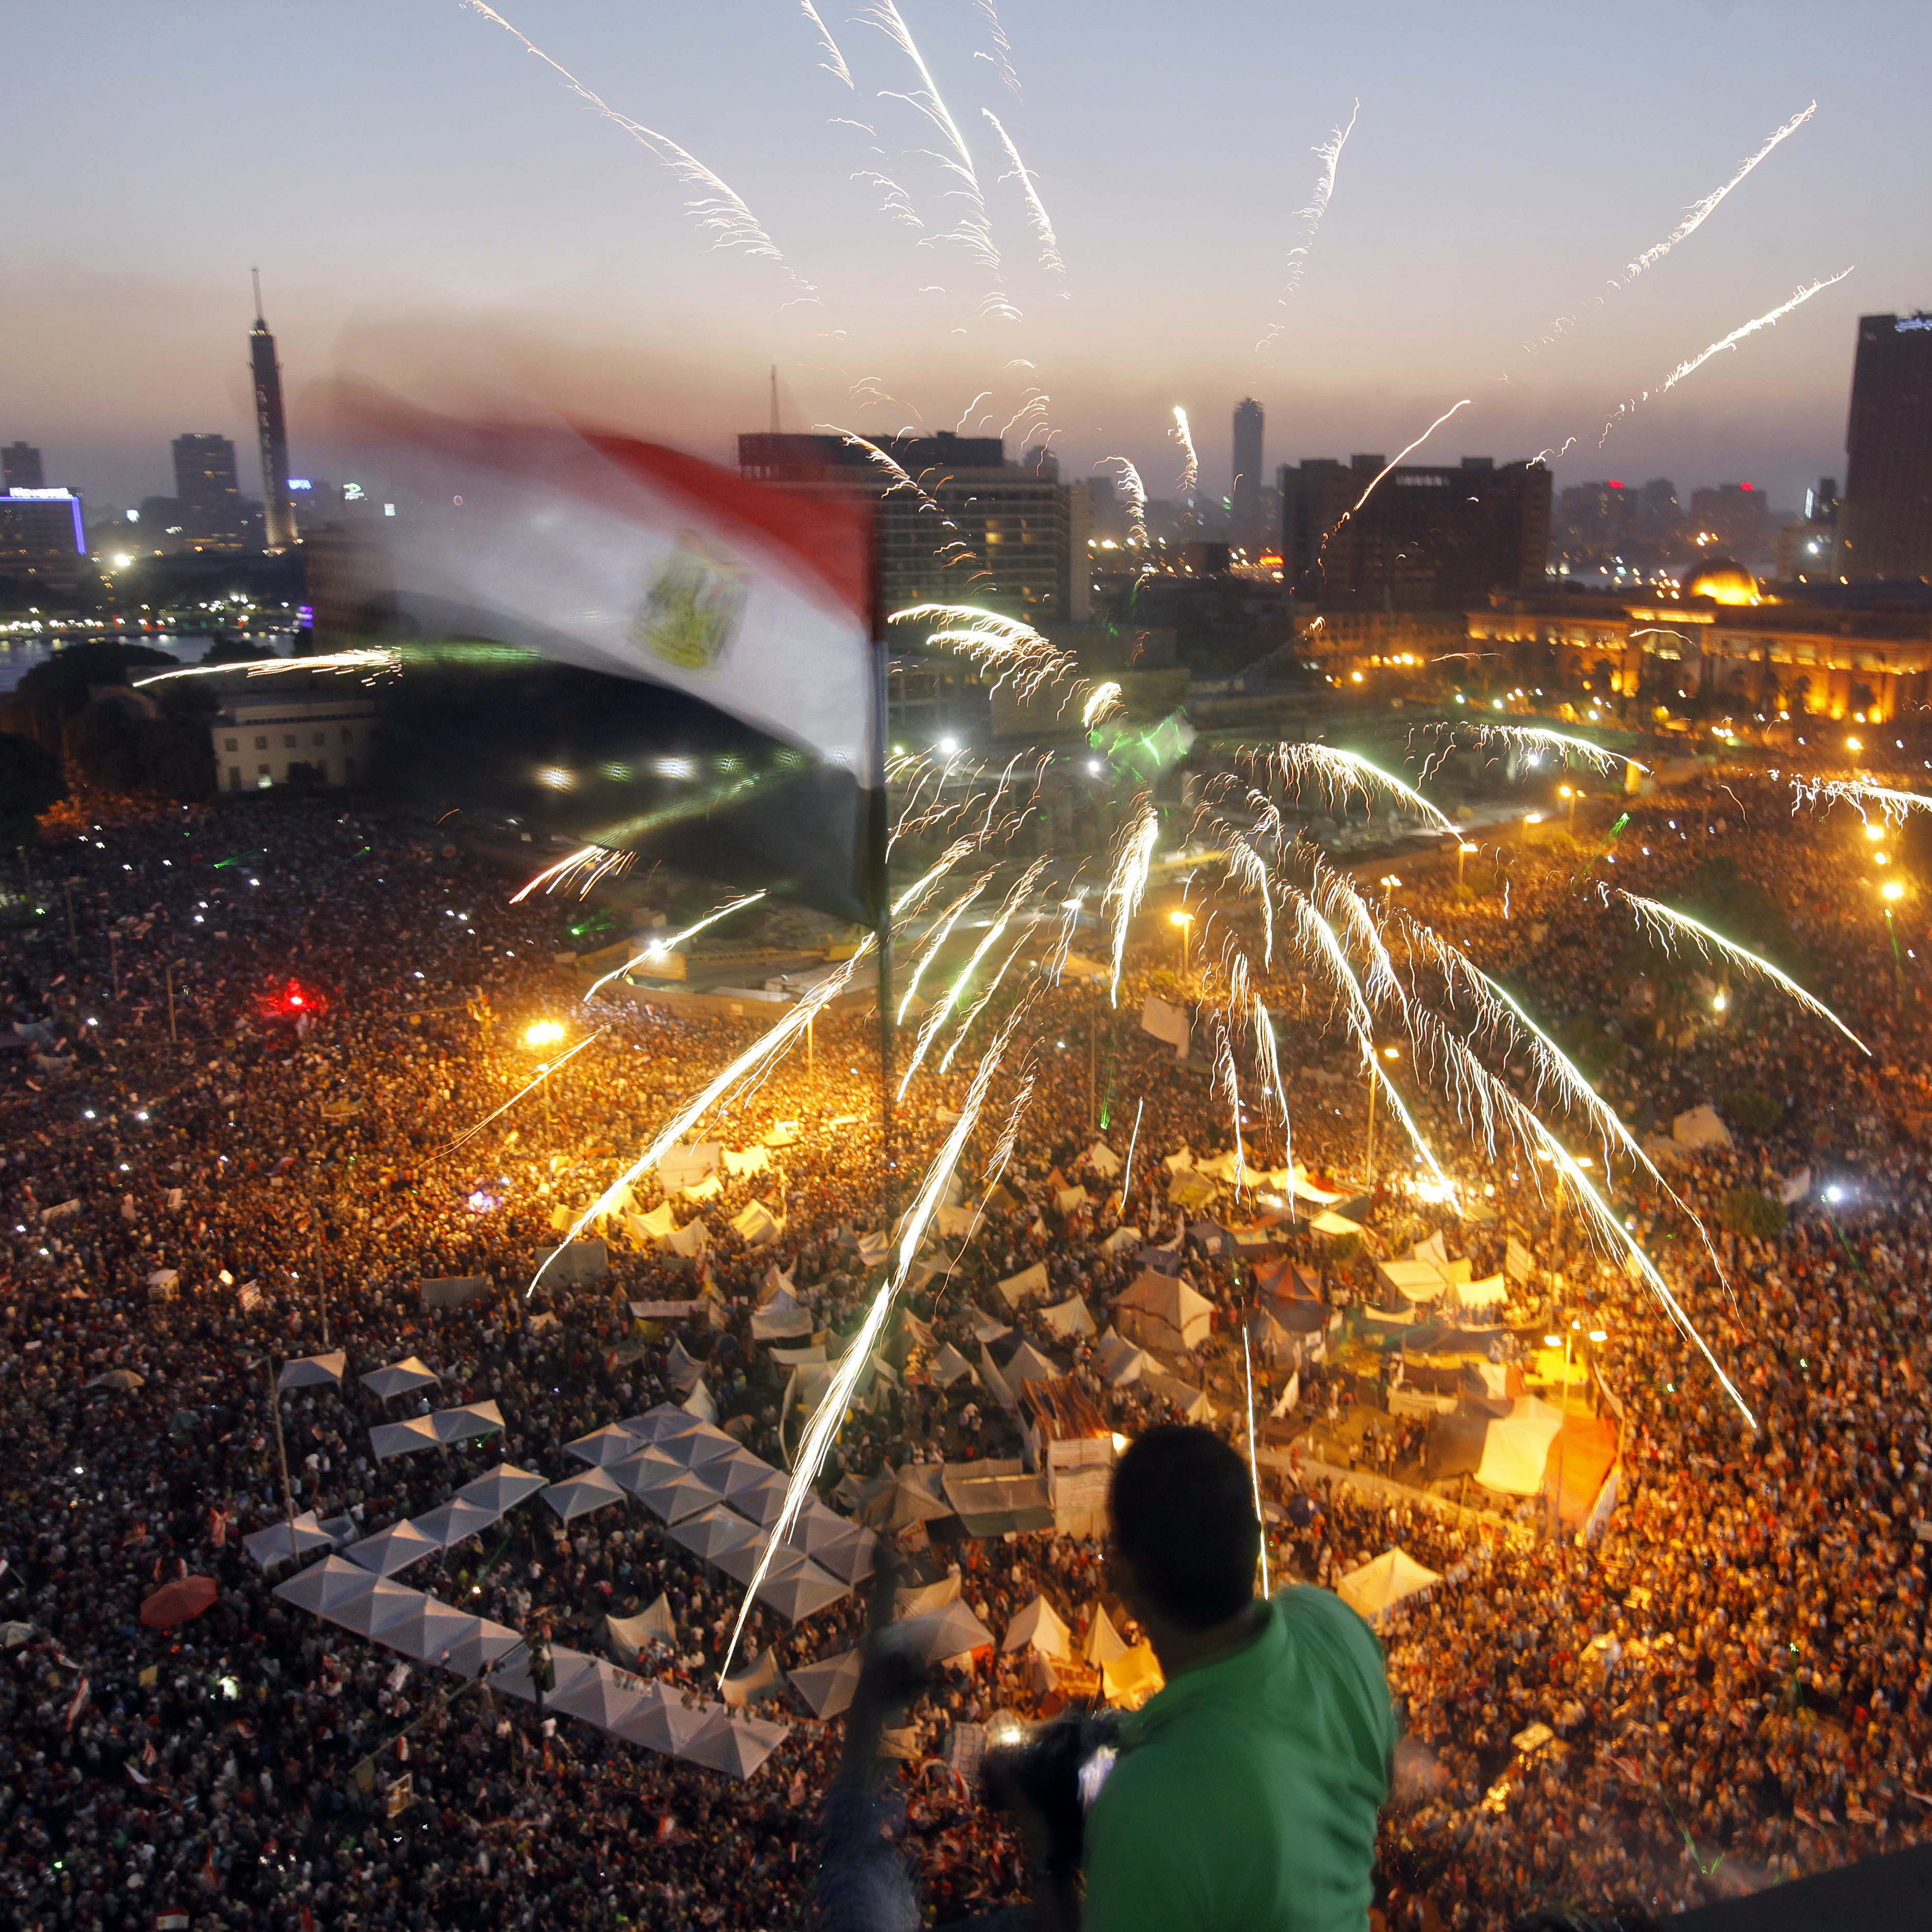 Egyptians gather in Tahrir Square during a demonstration against President Mohammed Morsi in Cairo on Sunday. Hundreds of thousands of Morsi opponents poured out onto the streets across much of Egypt, launching an all-out push to force him from office on the first anniversary of his inauguration.